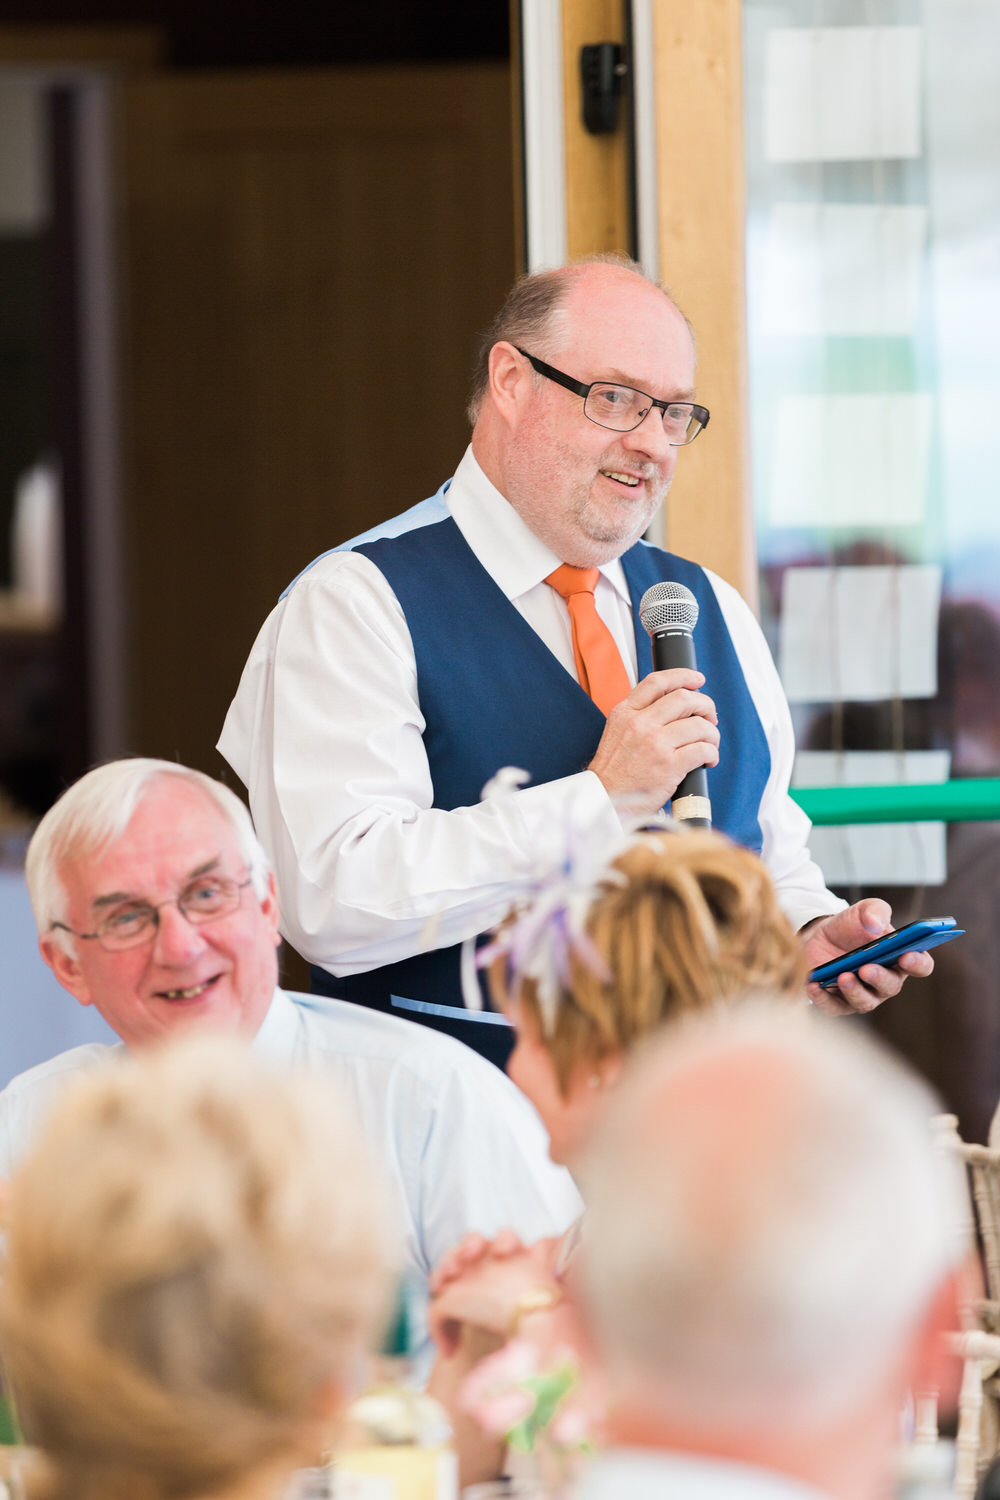 Special-Day-Photography-The-Bringewood-Ludlow-The-Bringewood-Hillside-Wedding-father-of-the-bride-speech.jpg